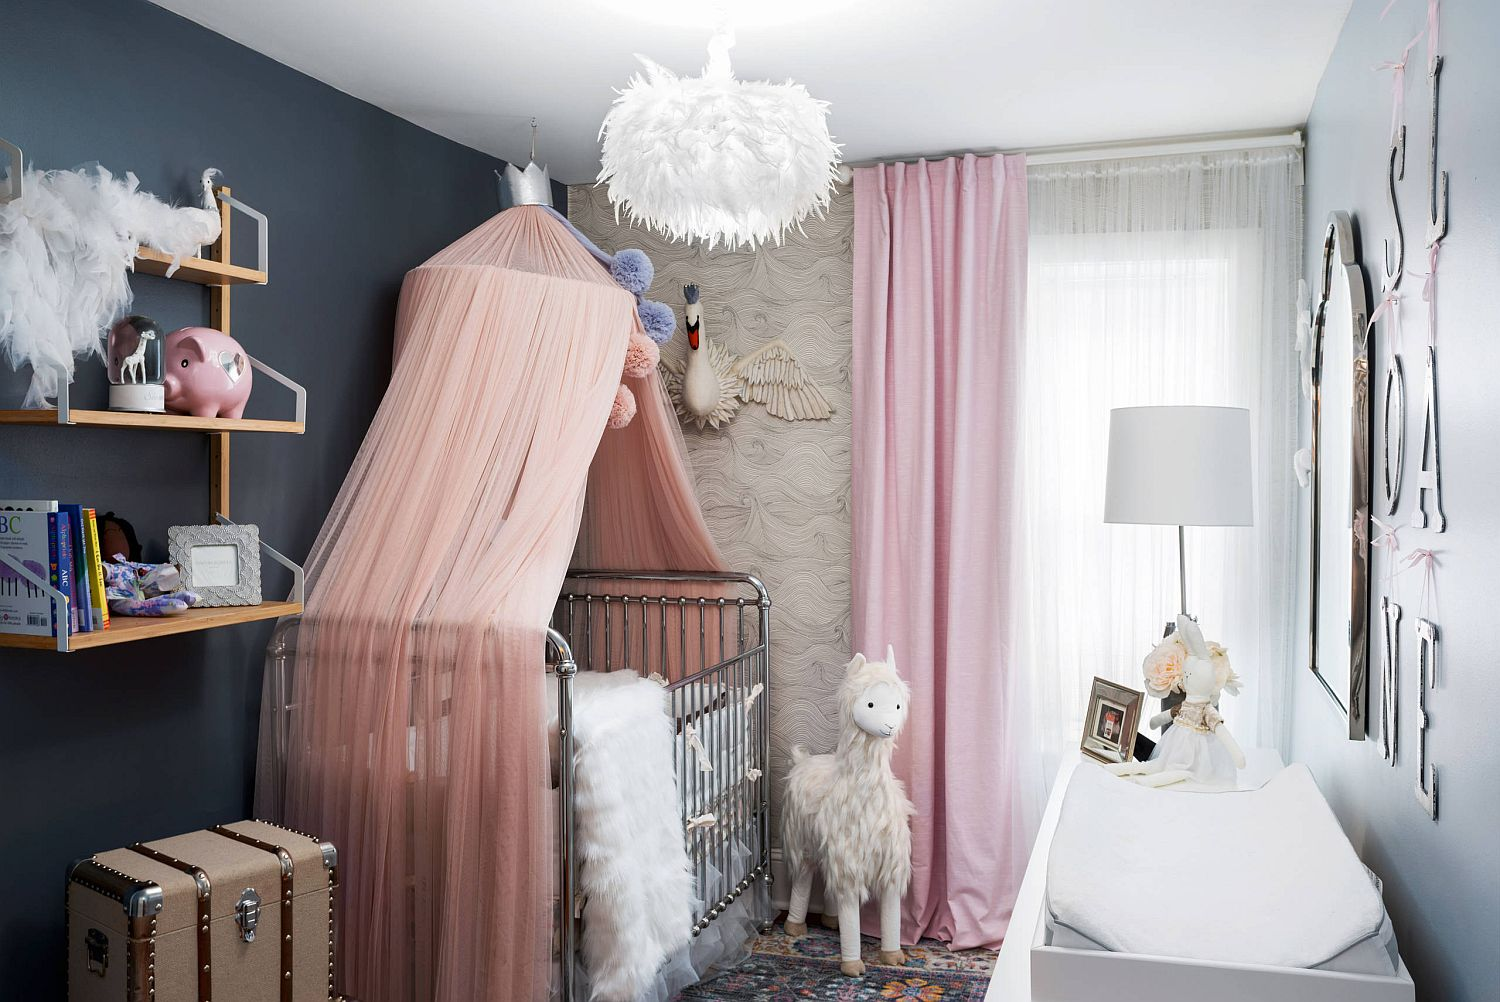 Glam eclectic nursery with pops of pastel pink and bluish-gray in the backdrop